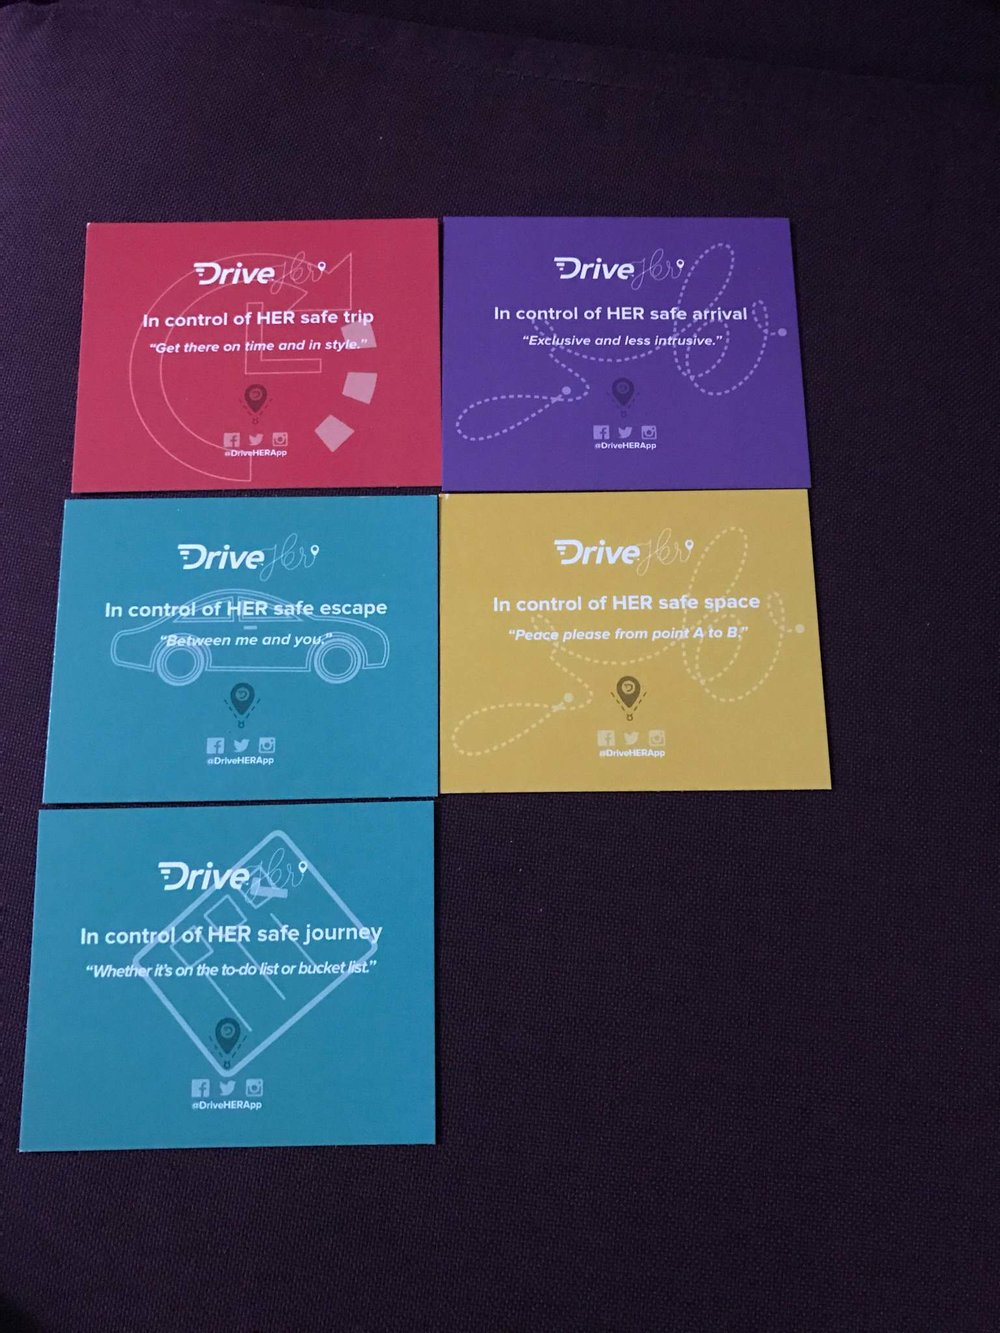 Copywriting for DriveHER App Promo Passes | For Women by Women Ride-Safe Service. Strong (relatable) statements to connect to target market.